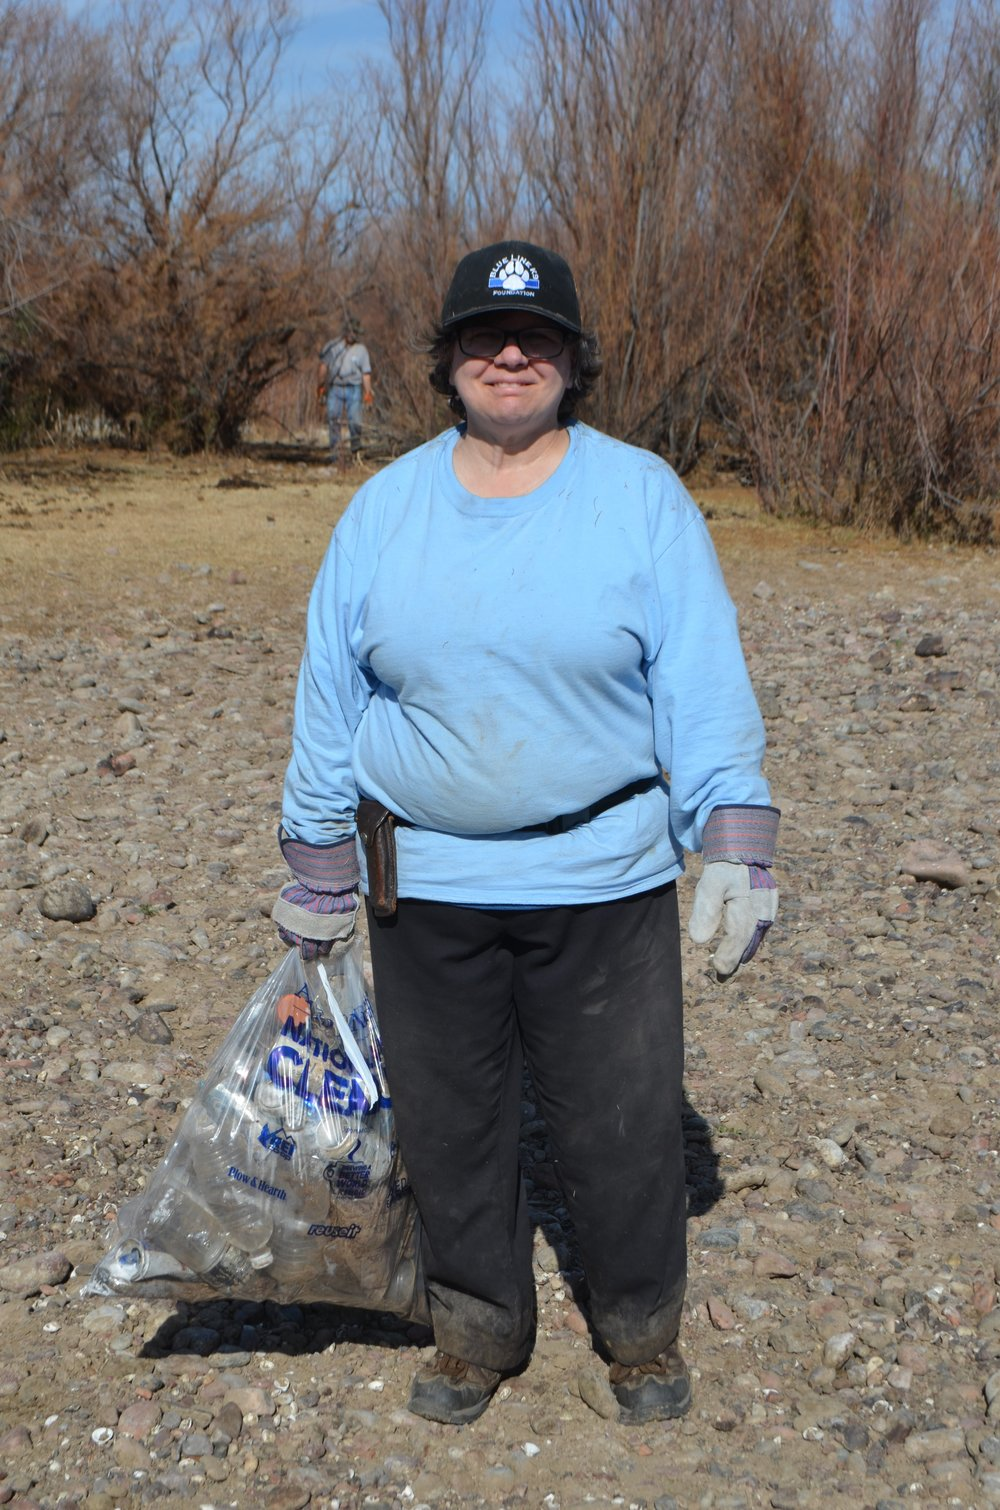 Coon Bluff Cleanup 2-17-18 131 c.jpg